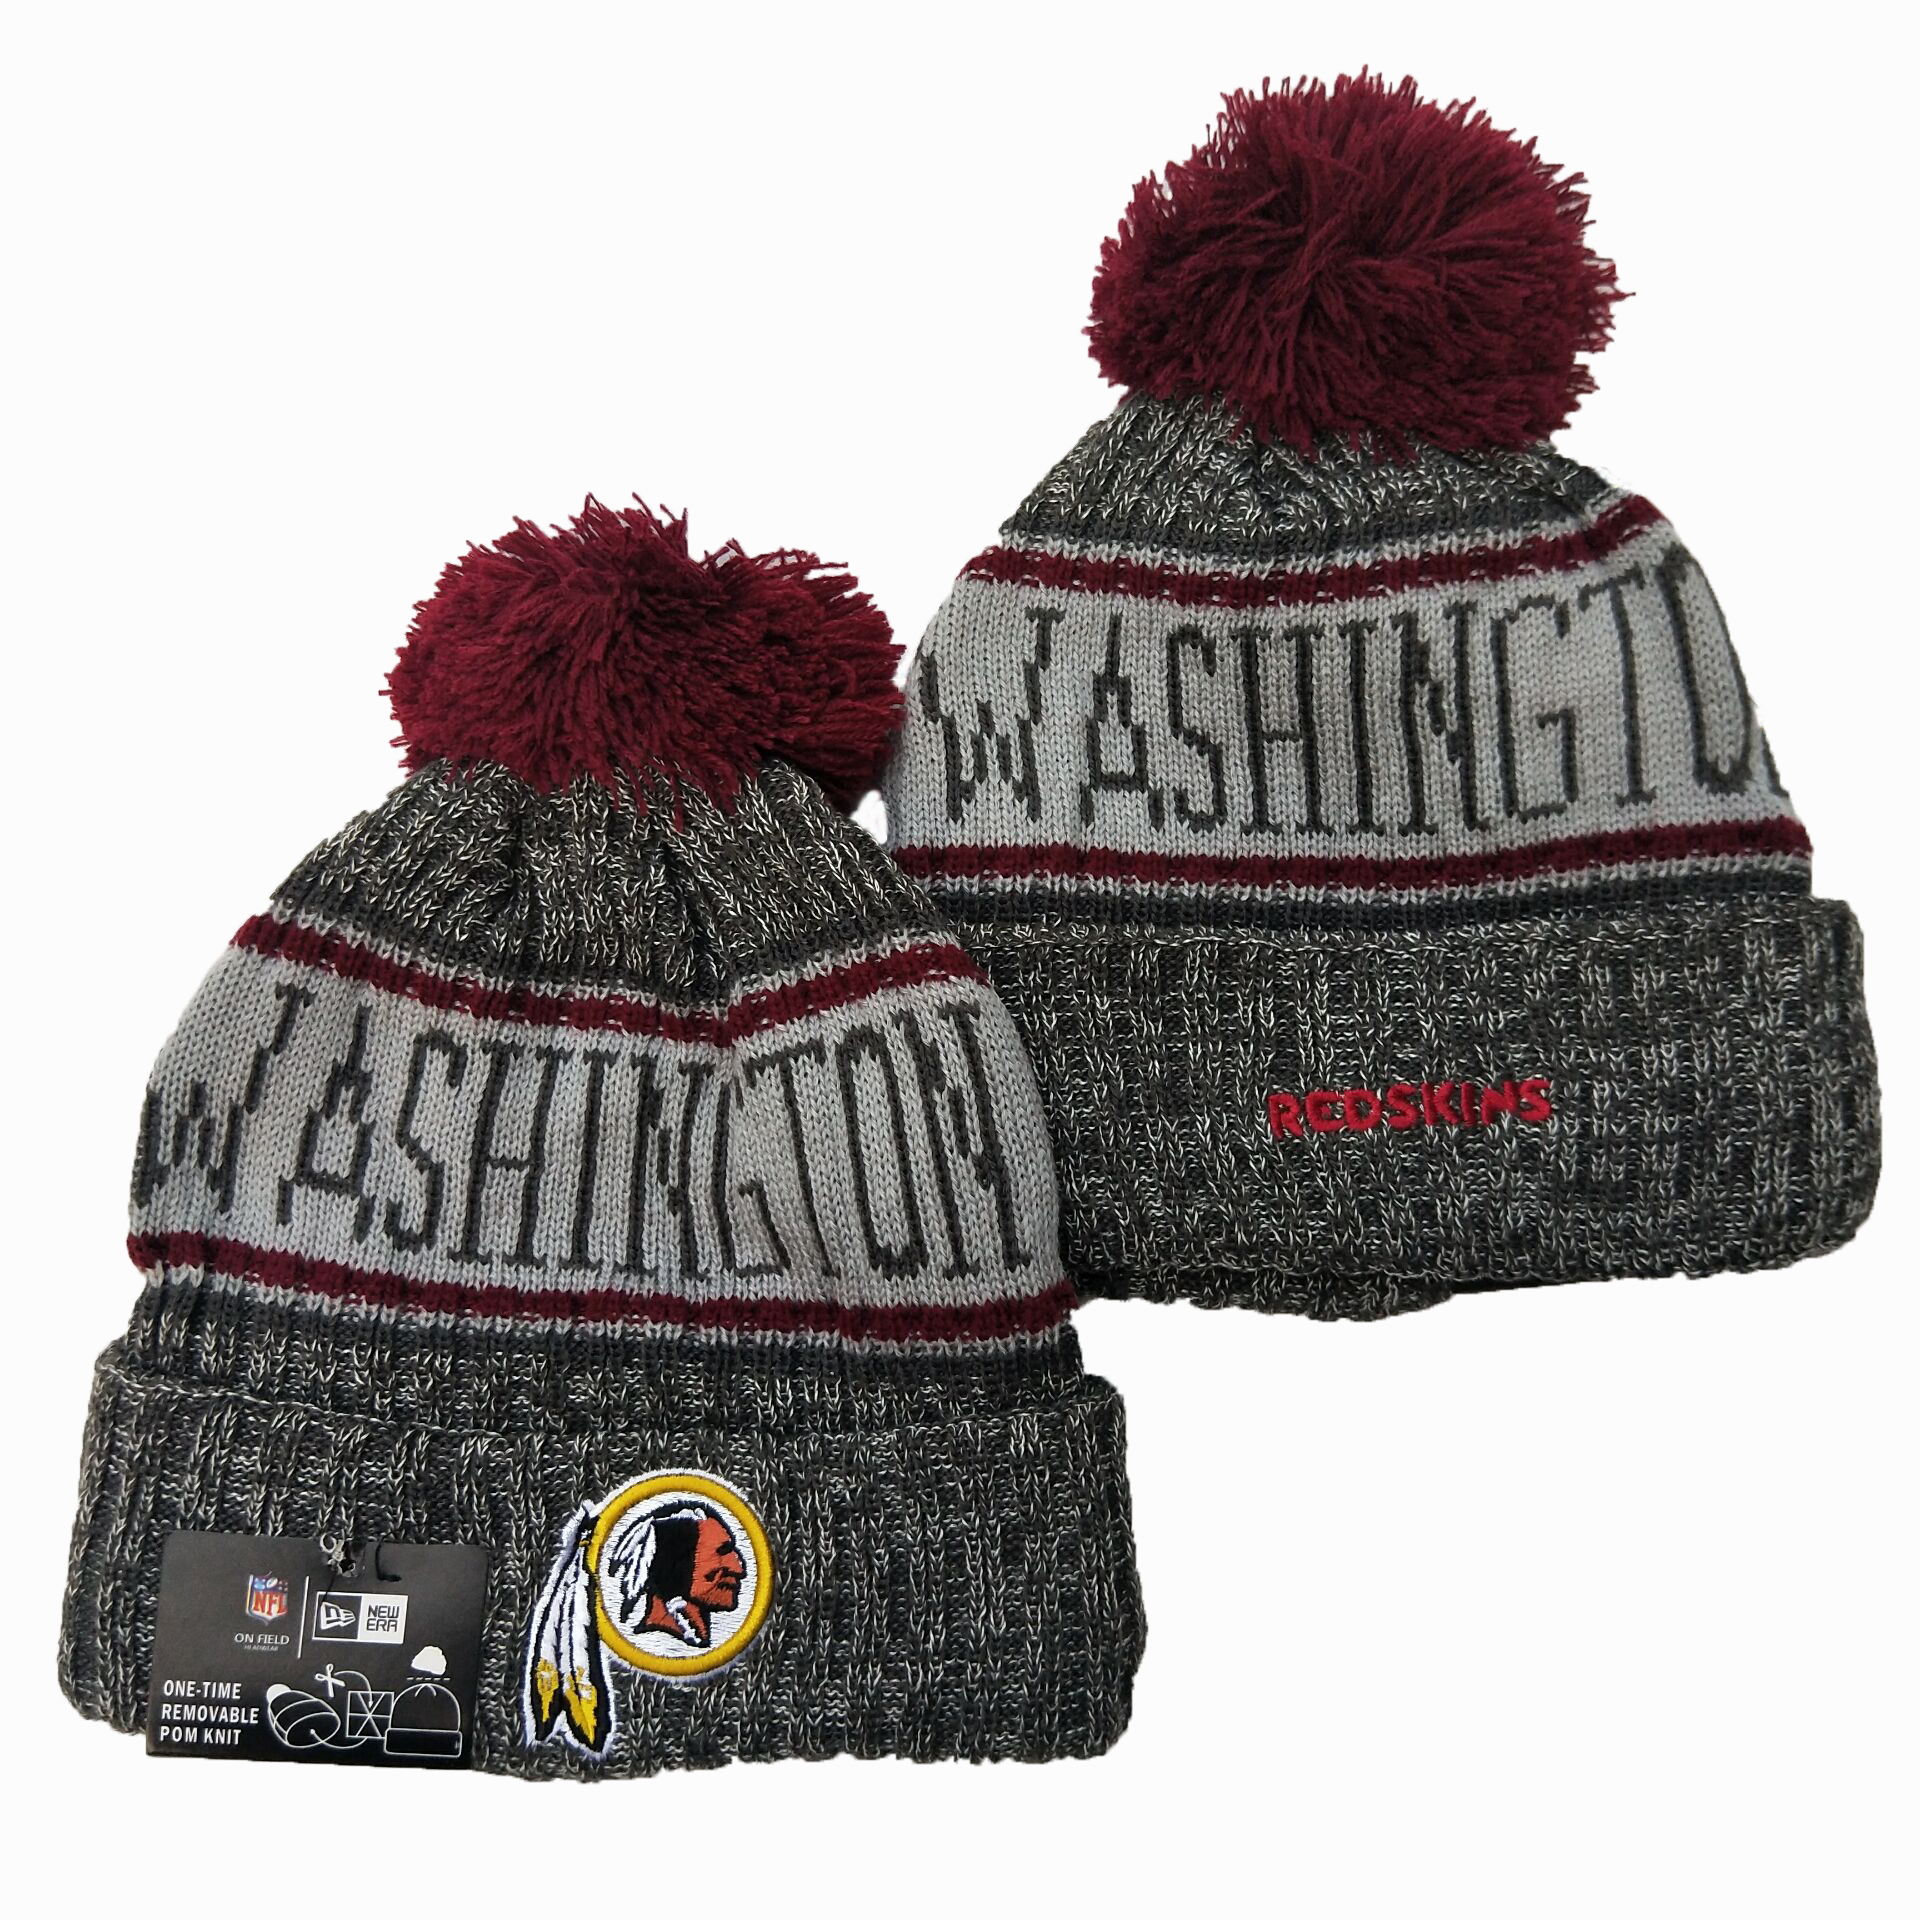 Redskins Team Logo Gray Pom Knit Hat YD